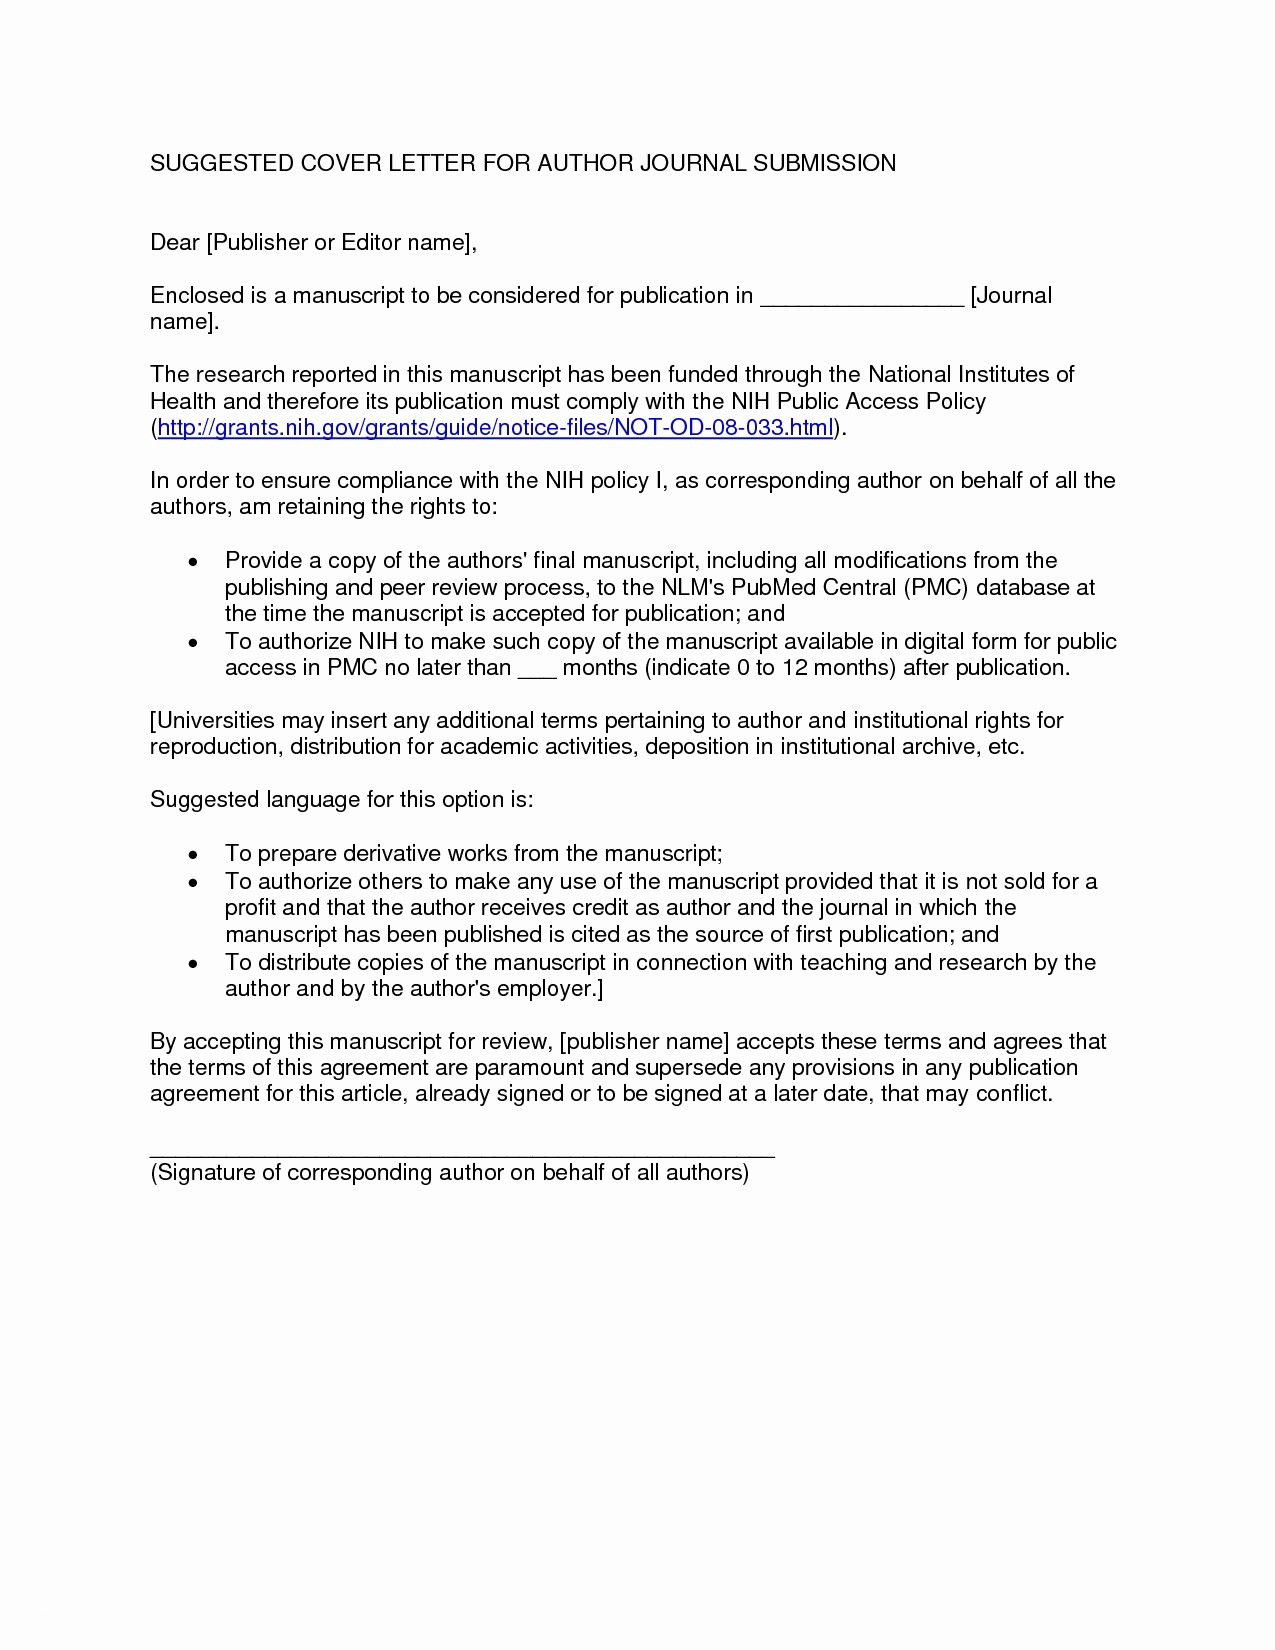 Government Job Cover Letter Template - Federal Government Resume Beautiful Federal Government Resume